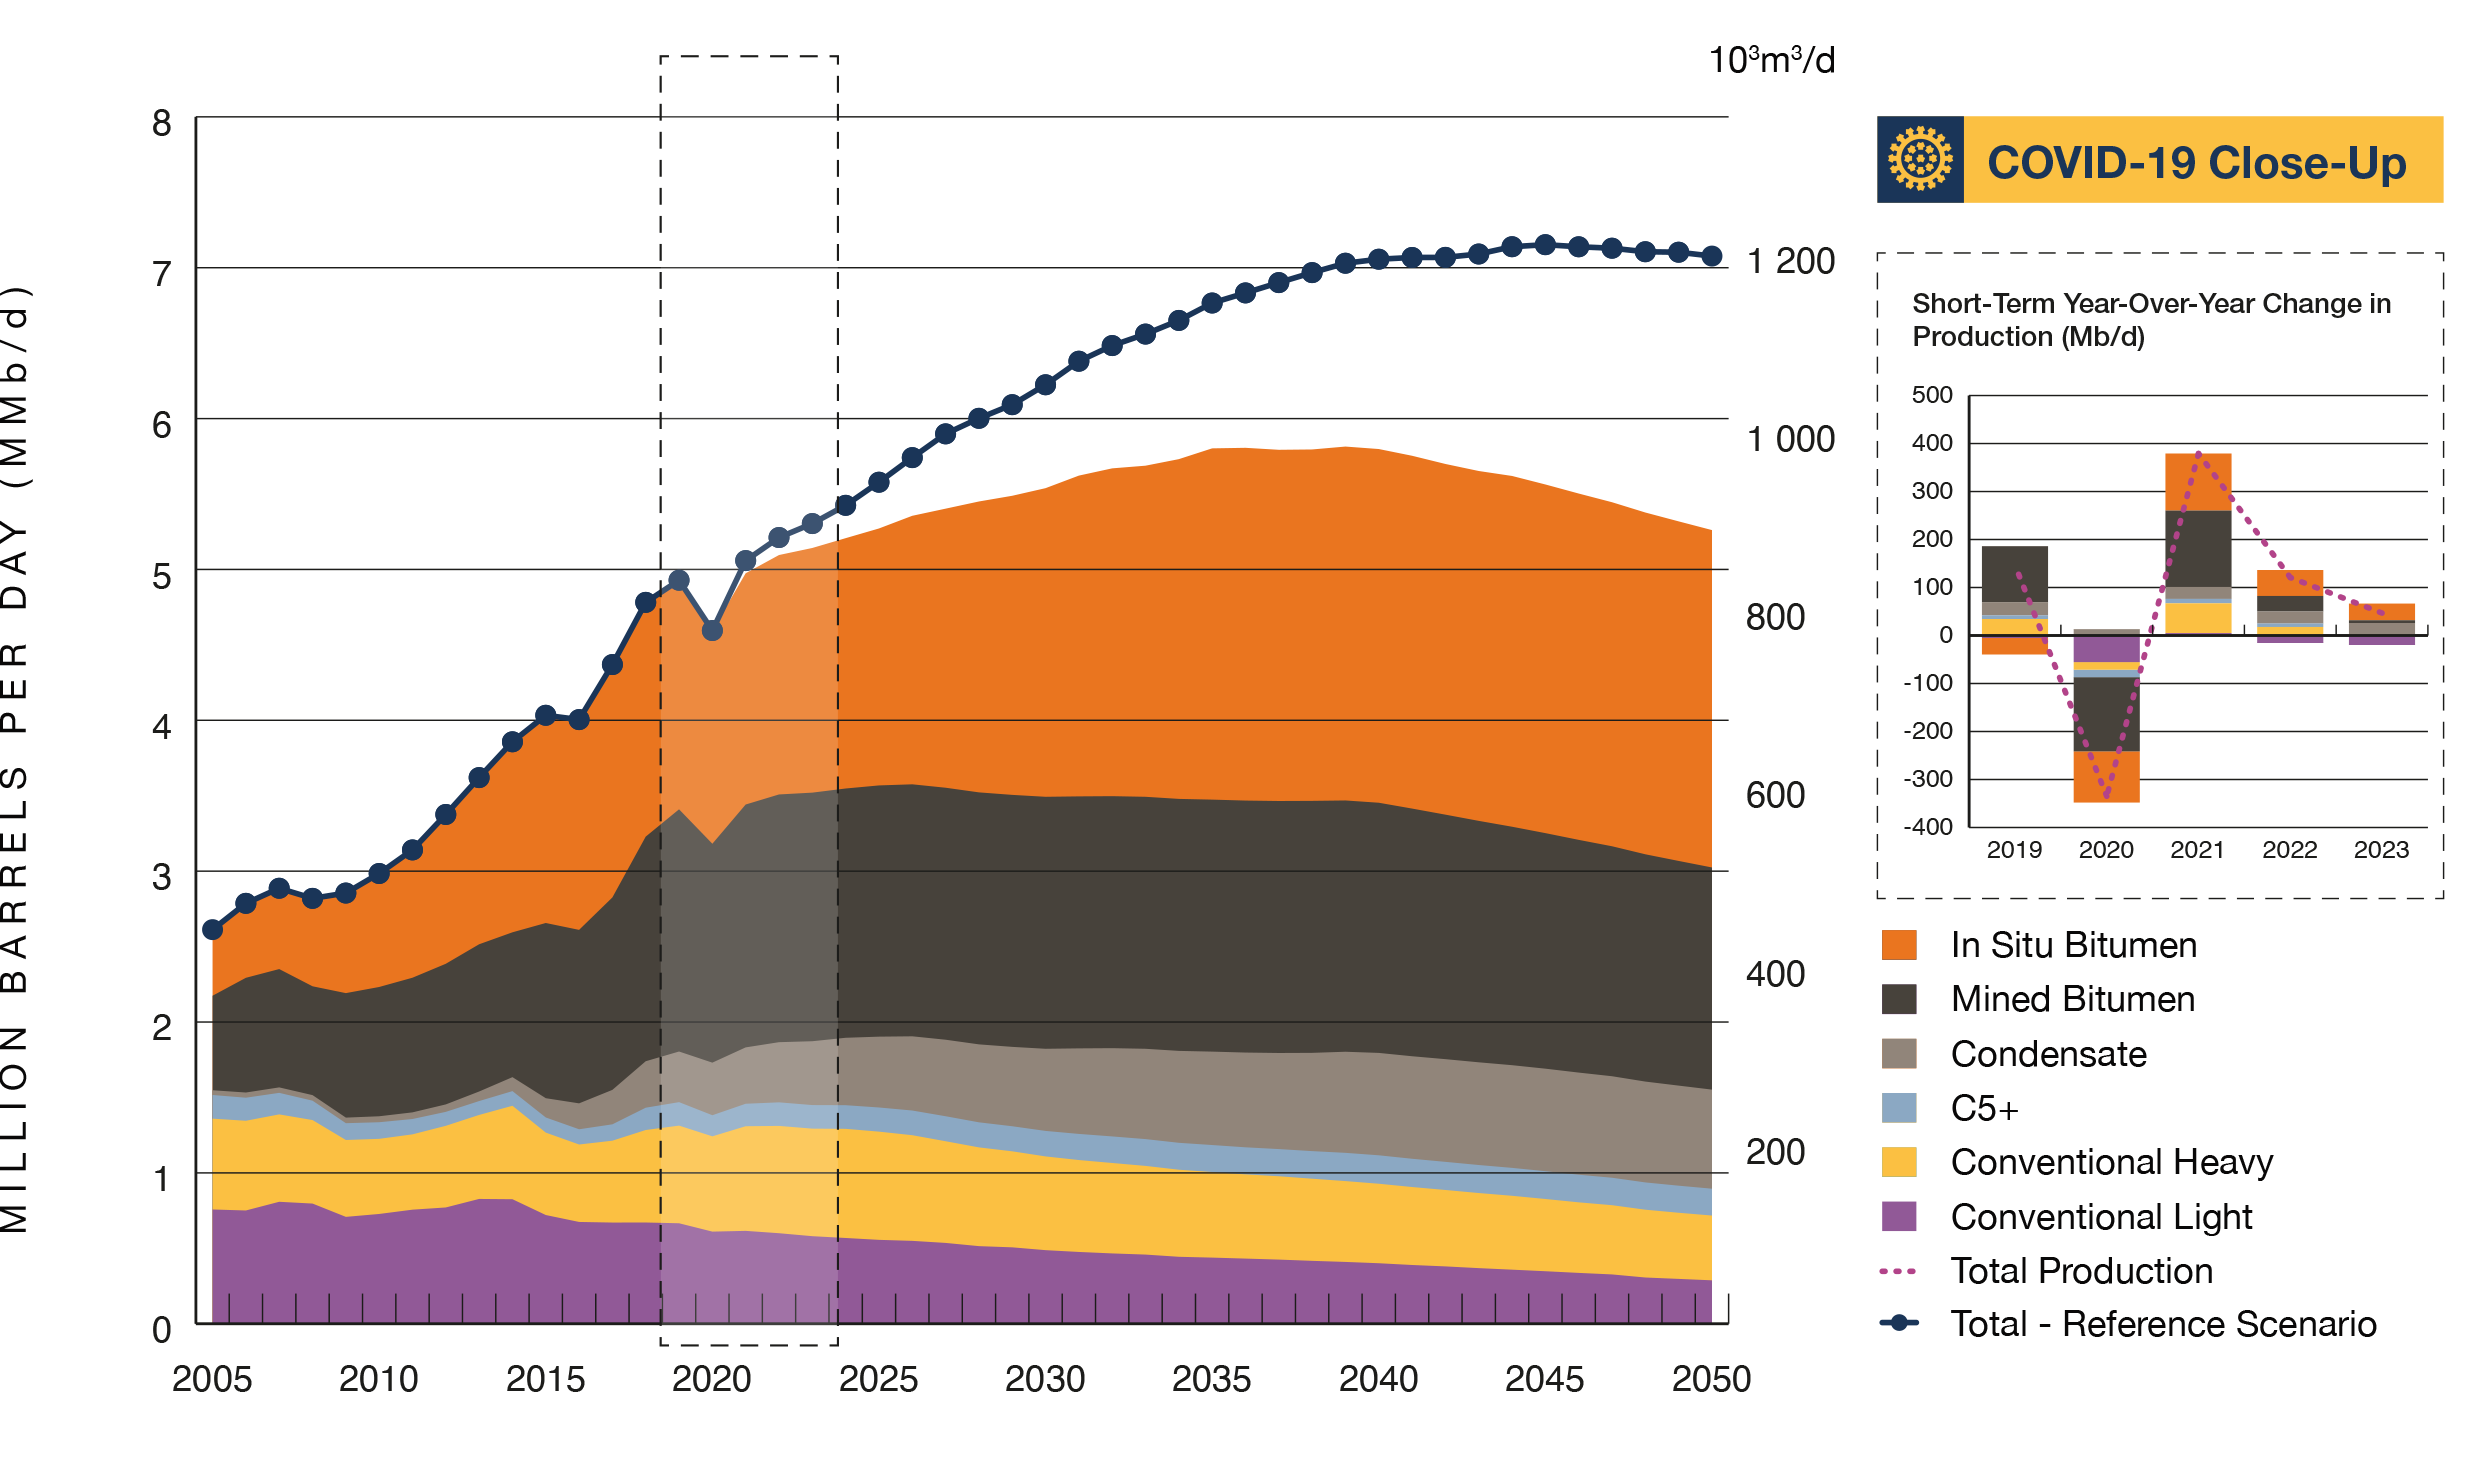 Figure R7 Total Crude Oil Production Peaks in 2039 and then Declines through 2050 in the Evolving Scenario